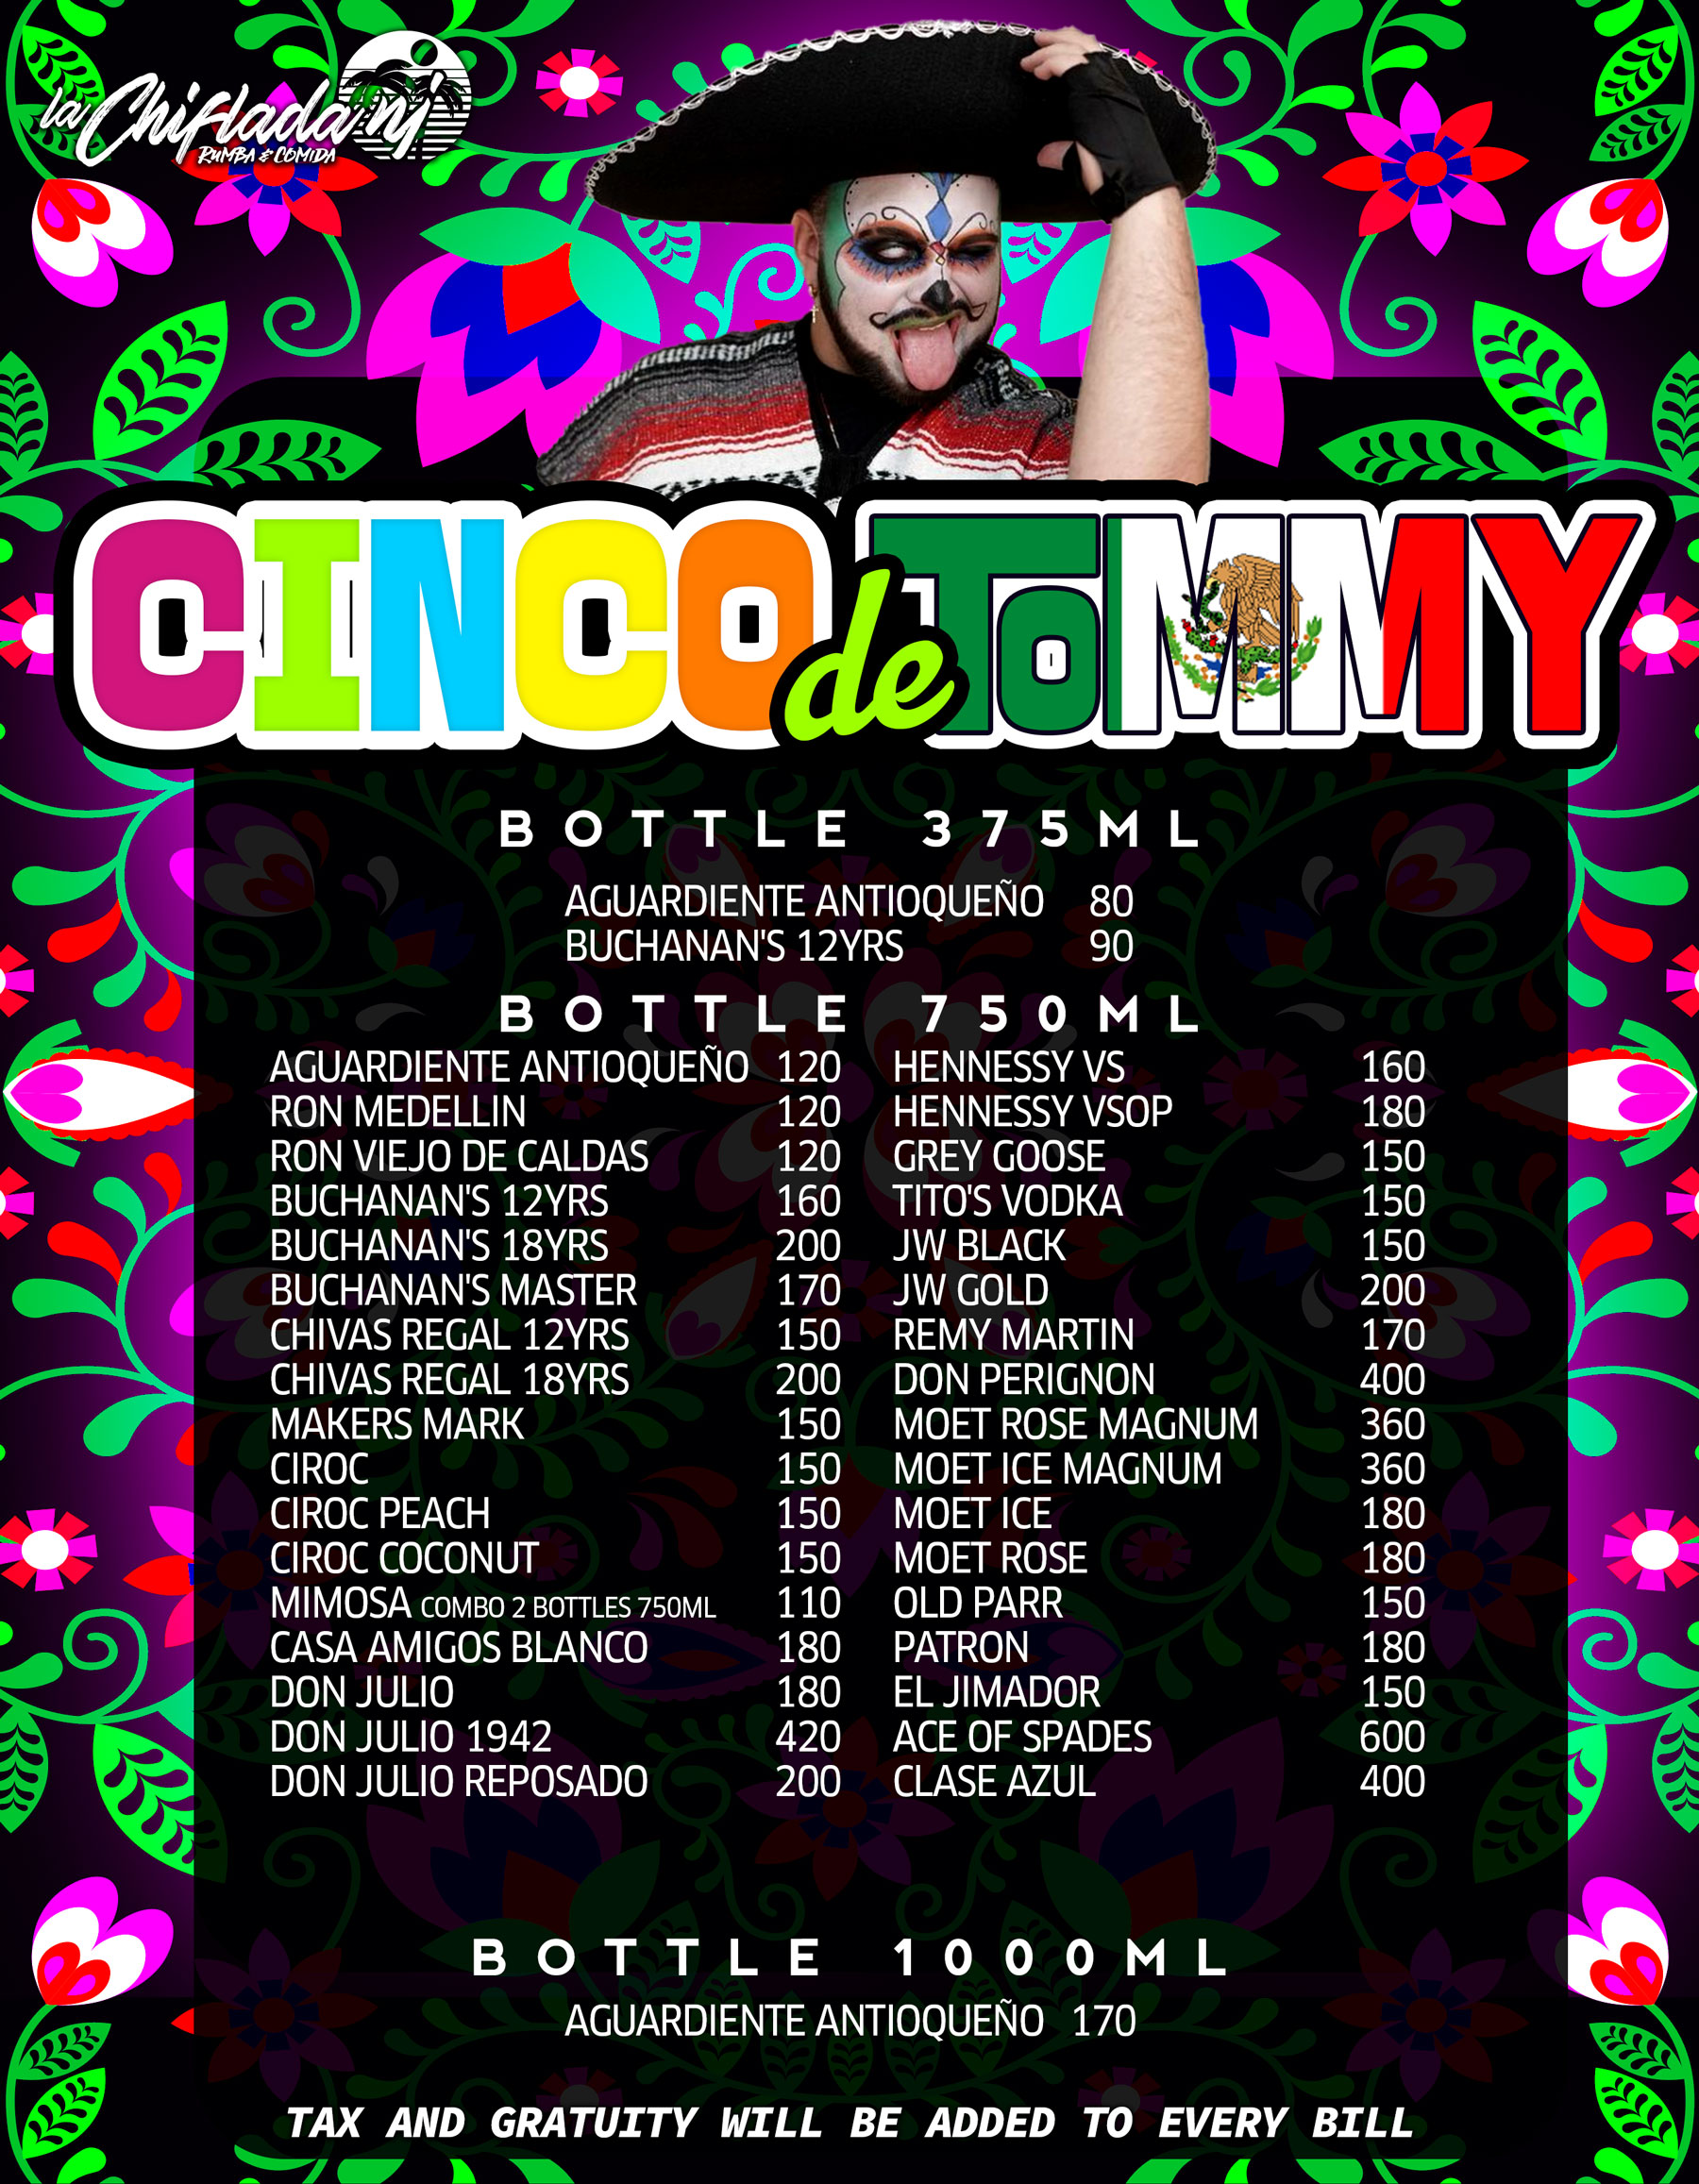 LA-CHIFLADA-FRIDAY-BOTTLE-MENU-cinco-de-tommy